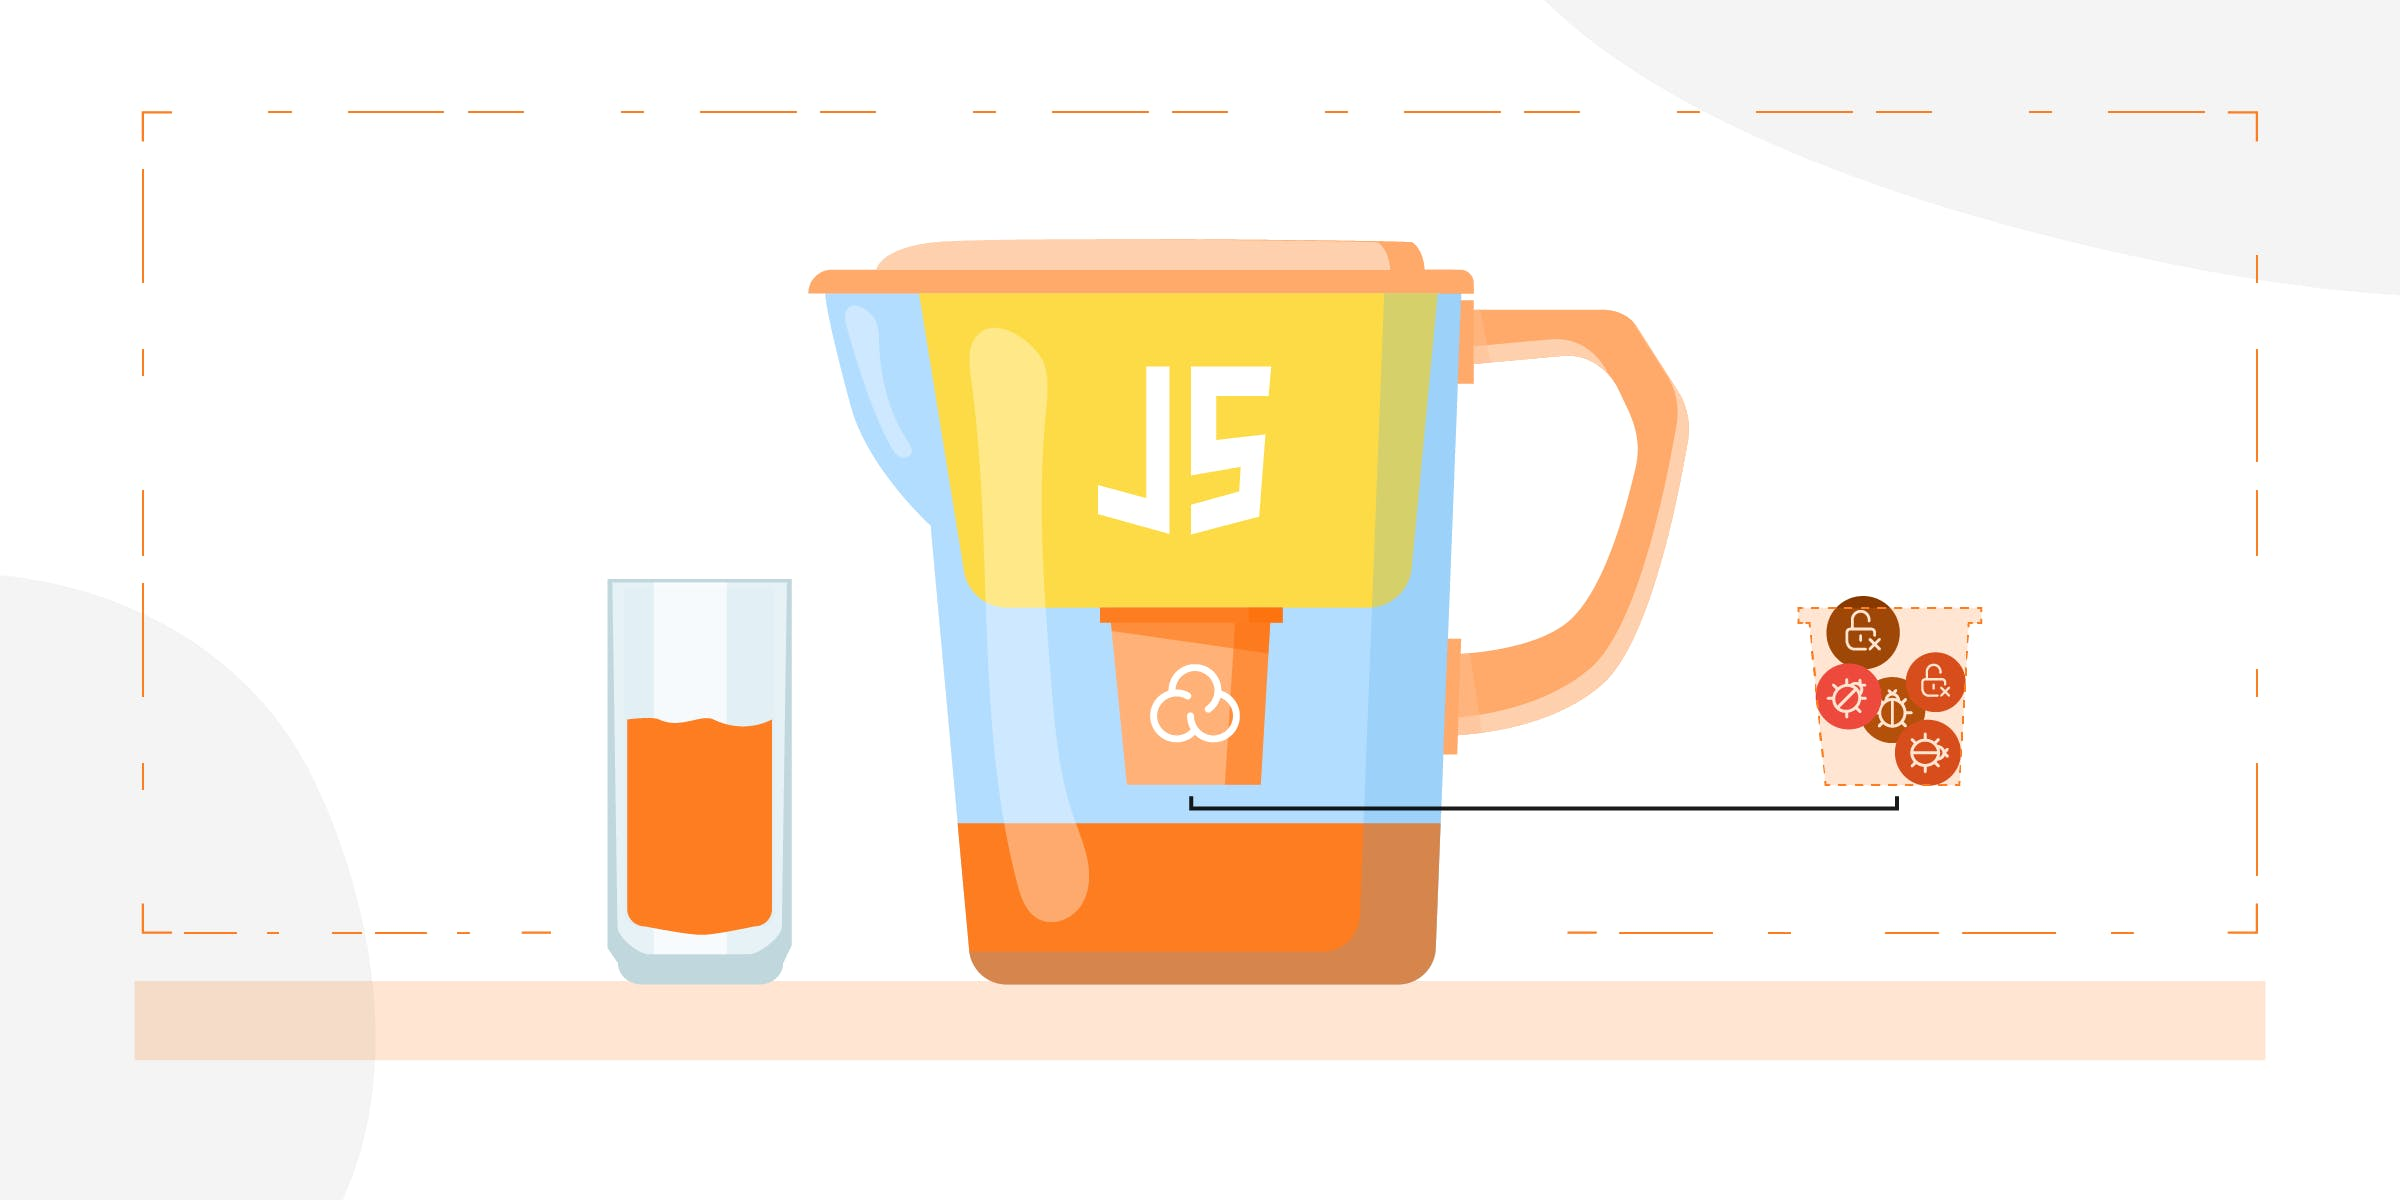 Our JavaScript and TypeScript SAST engines filter the Vulnerabilities out of OWASP JuiceShop.